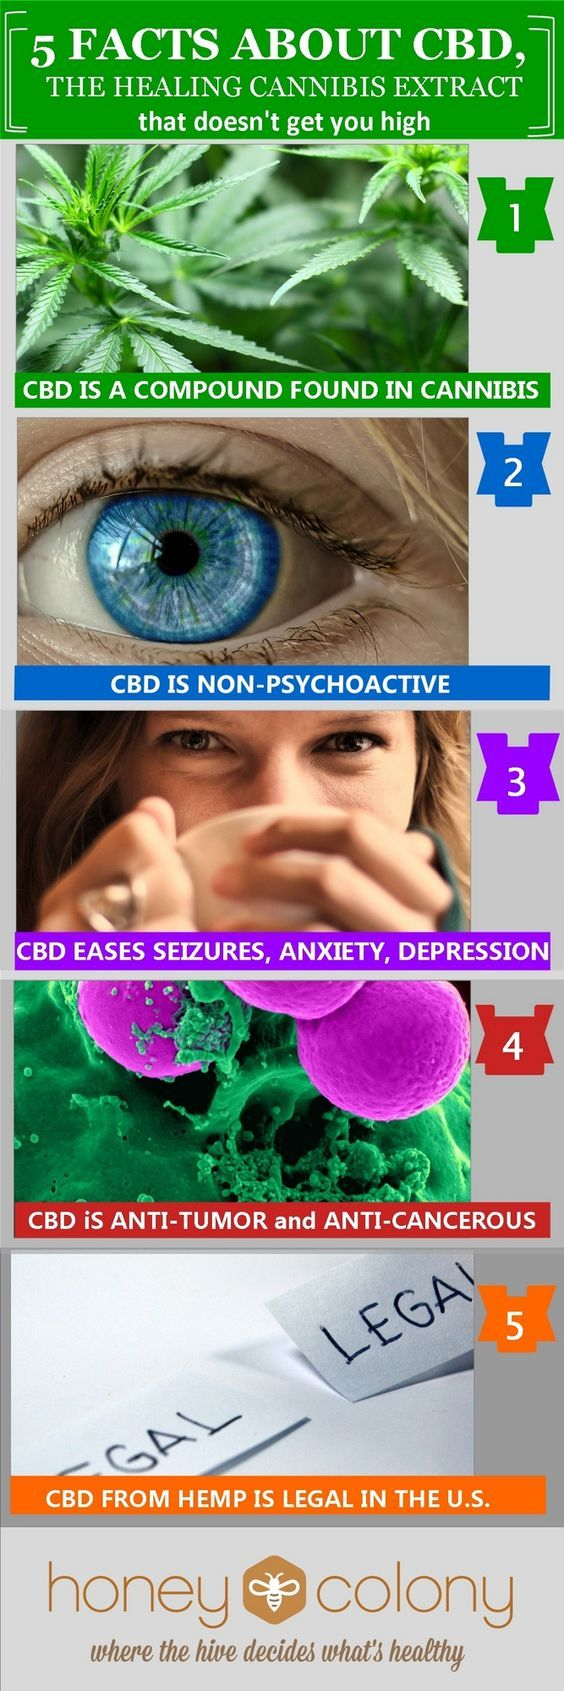 Element x cbd review reduces anxiety pain and stress is it legal - Cbd Oil Benefits List For Cancer Anxiety Seizures Pain Depression